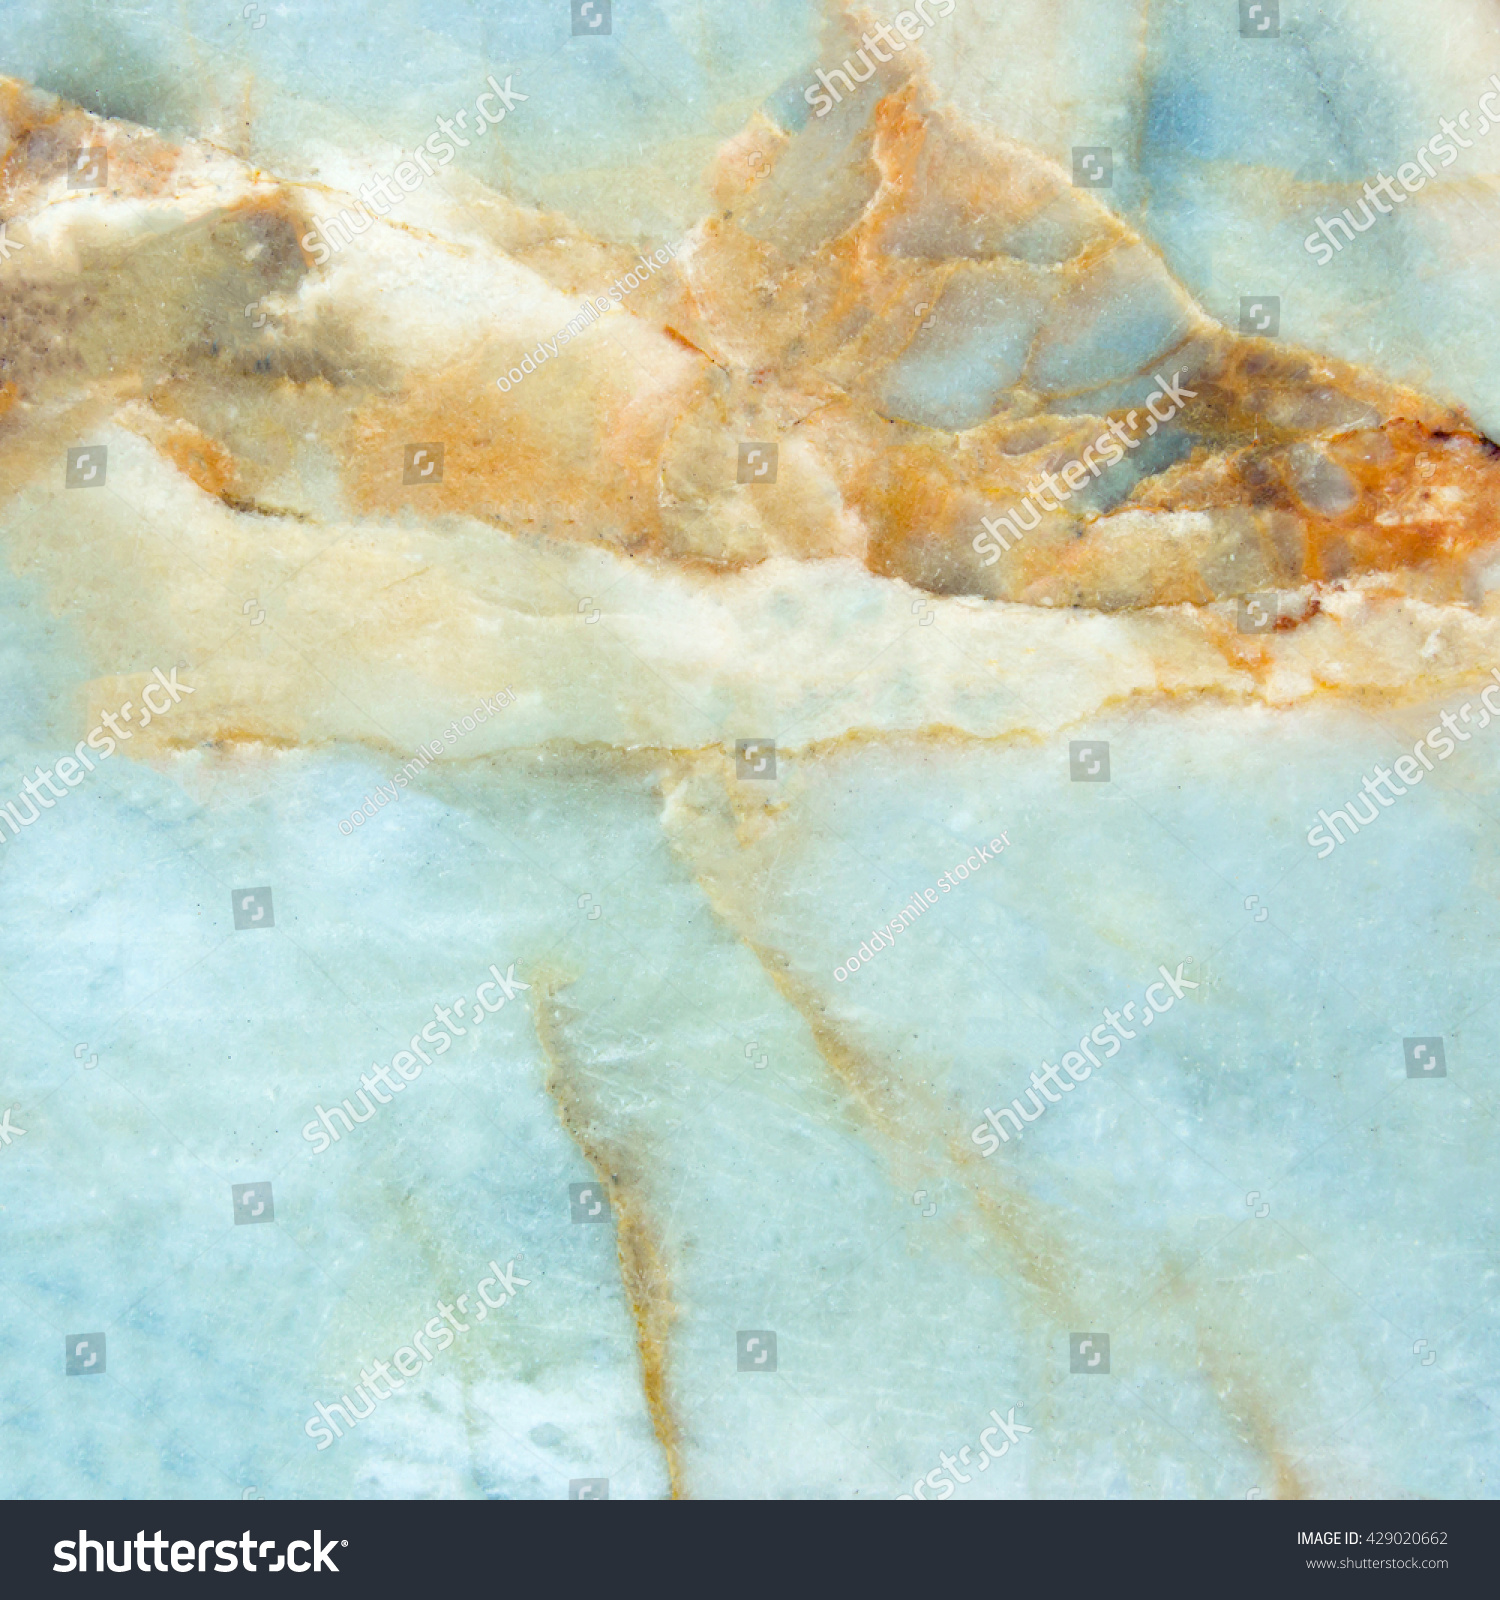 Best Wallpaper High Quality Marble - stock-photo-white-marble-texture-background-green-marble-texture-background-floor-decorative-stone-interior-429020662  Best Photo Reference_96710.jpg